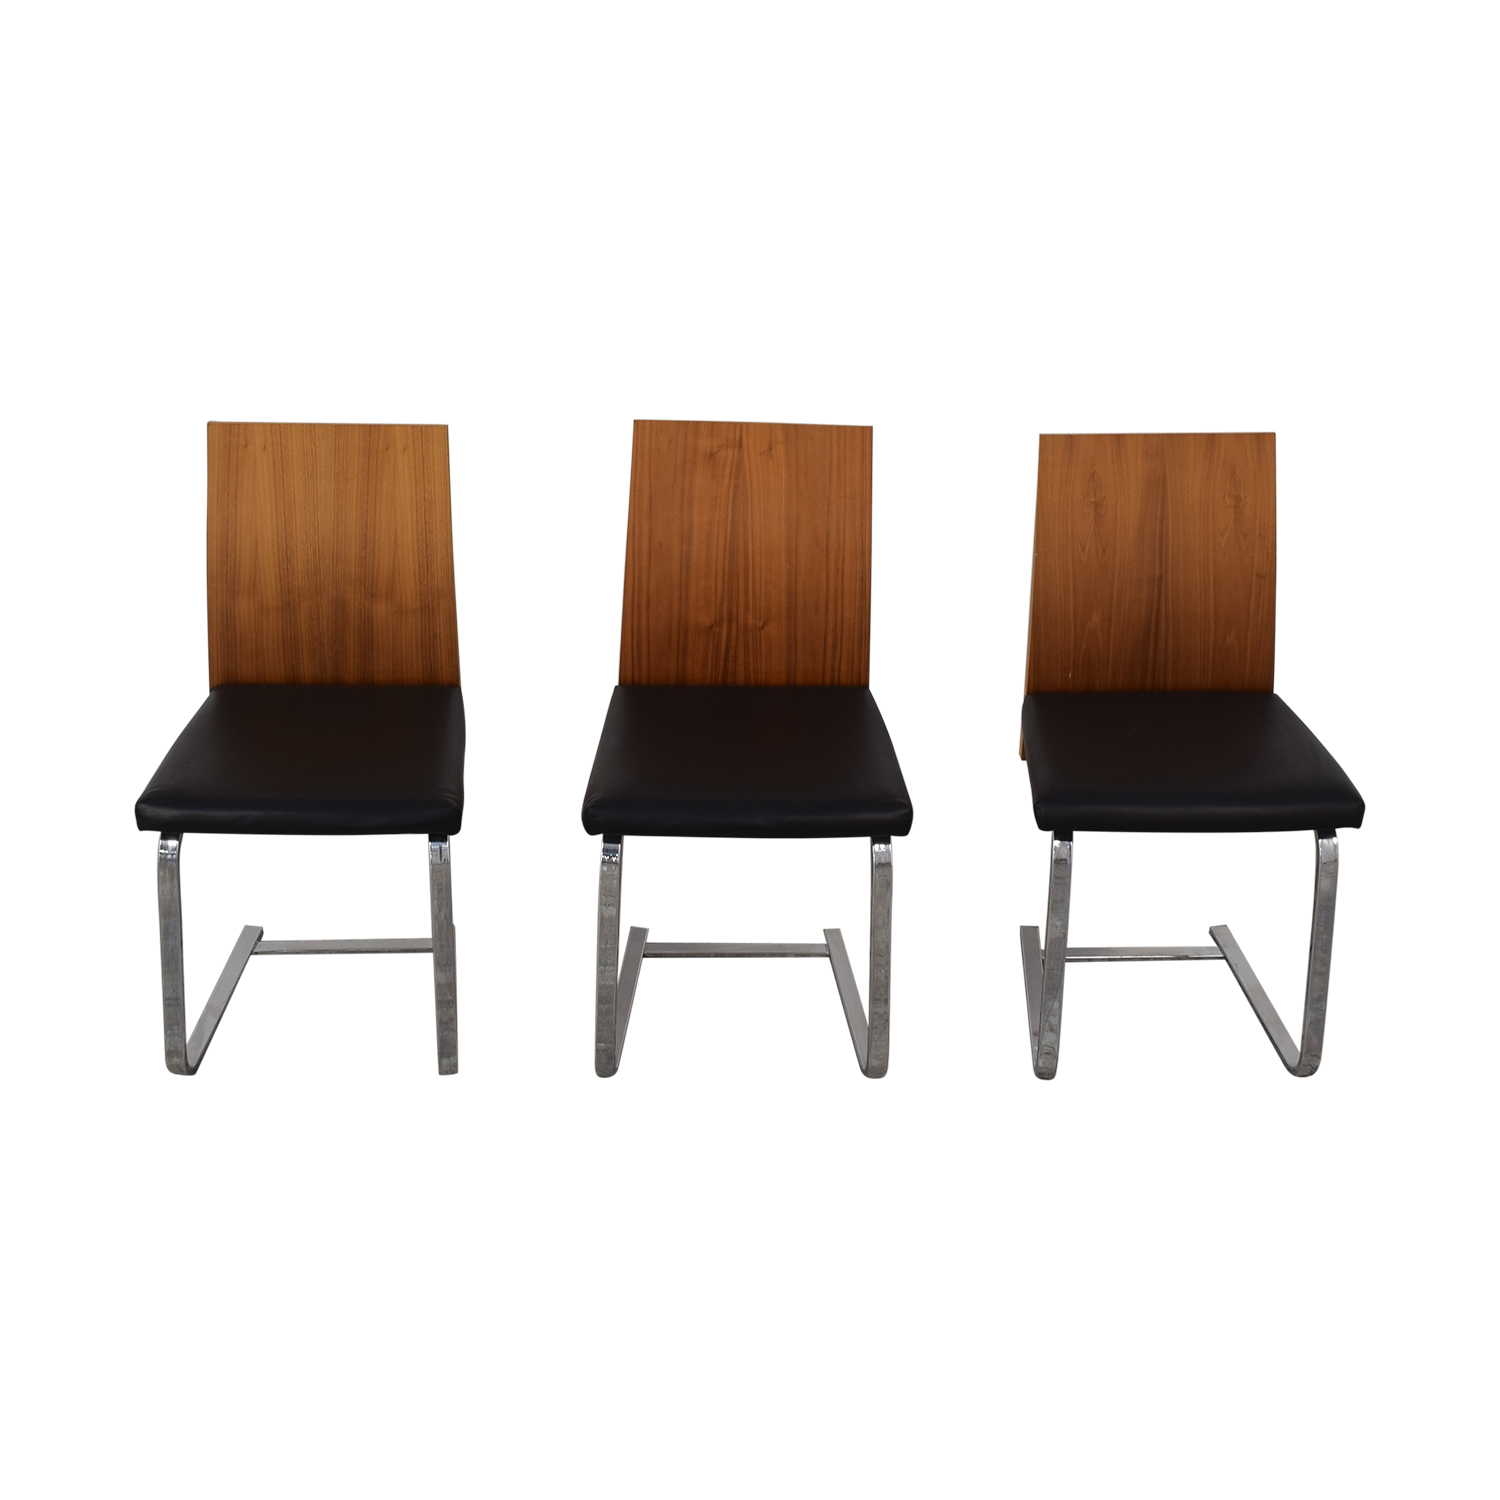 Domitalia Jeff-sl Chrome Black Leather and Wood Dining Chairs / Dining Chairs